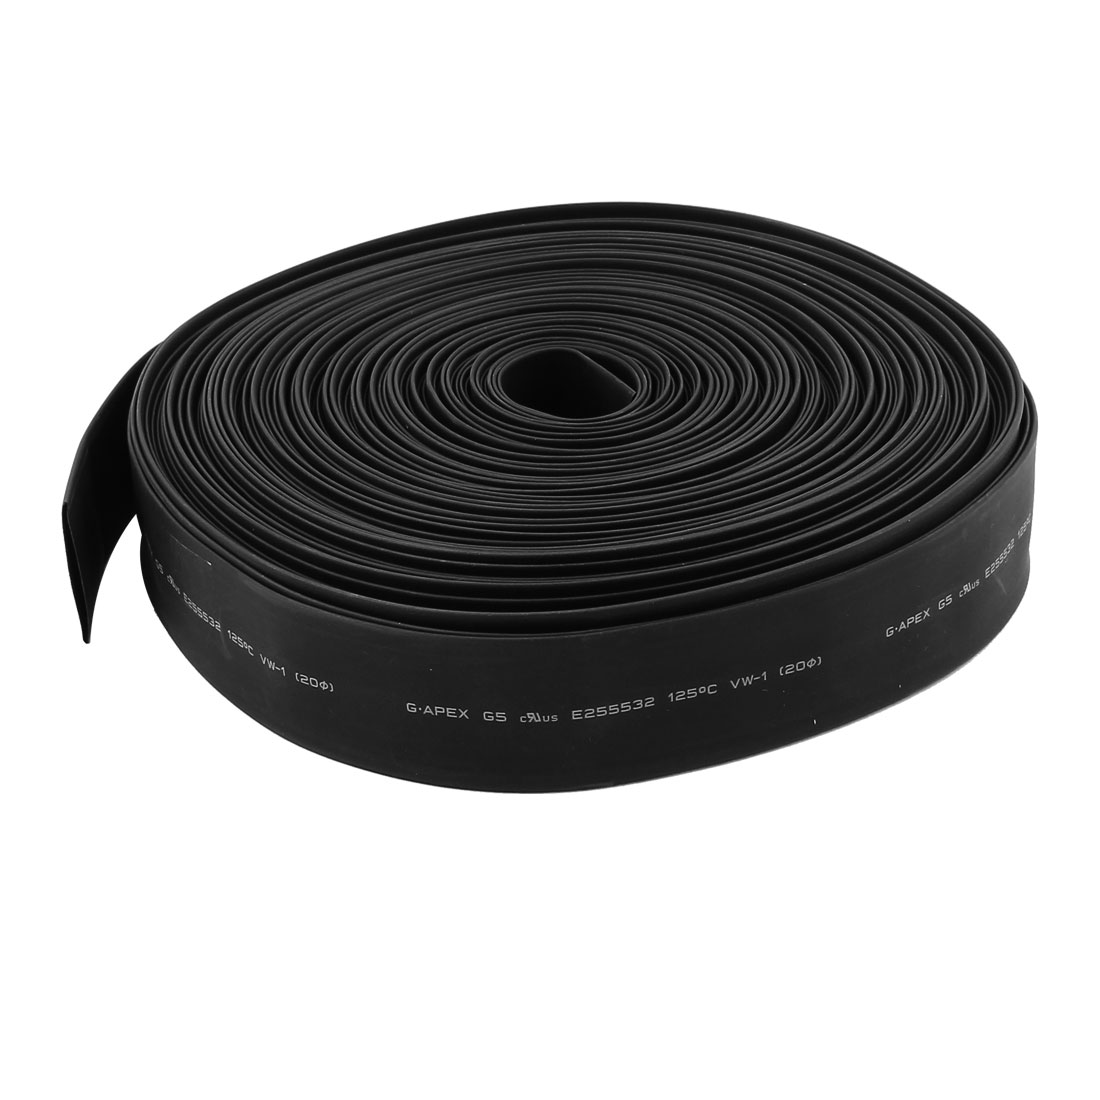 30m 20mm Dia Insulated PE Heat Shrink Tube 2:1 Shrinkage Ratio Waterproof Black